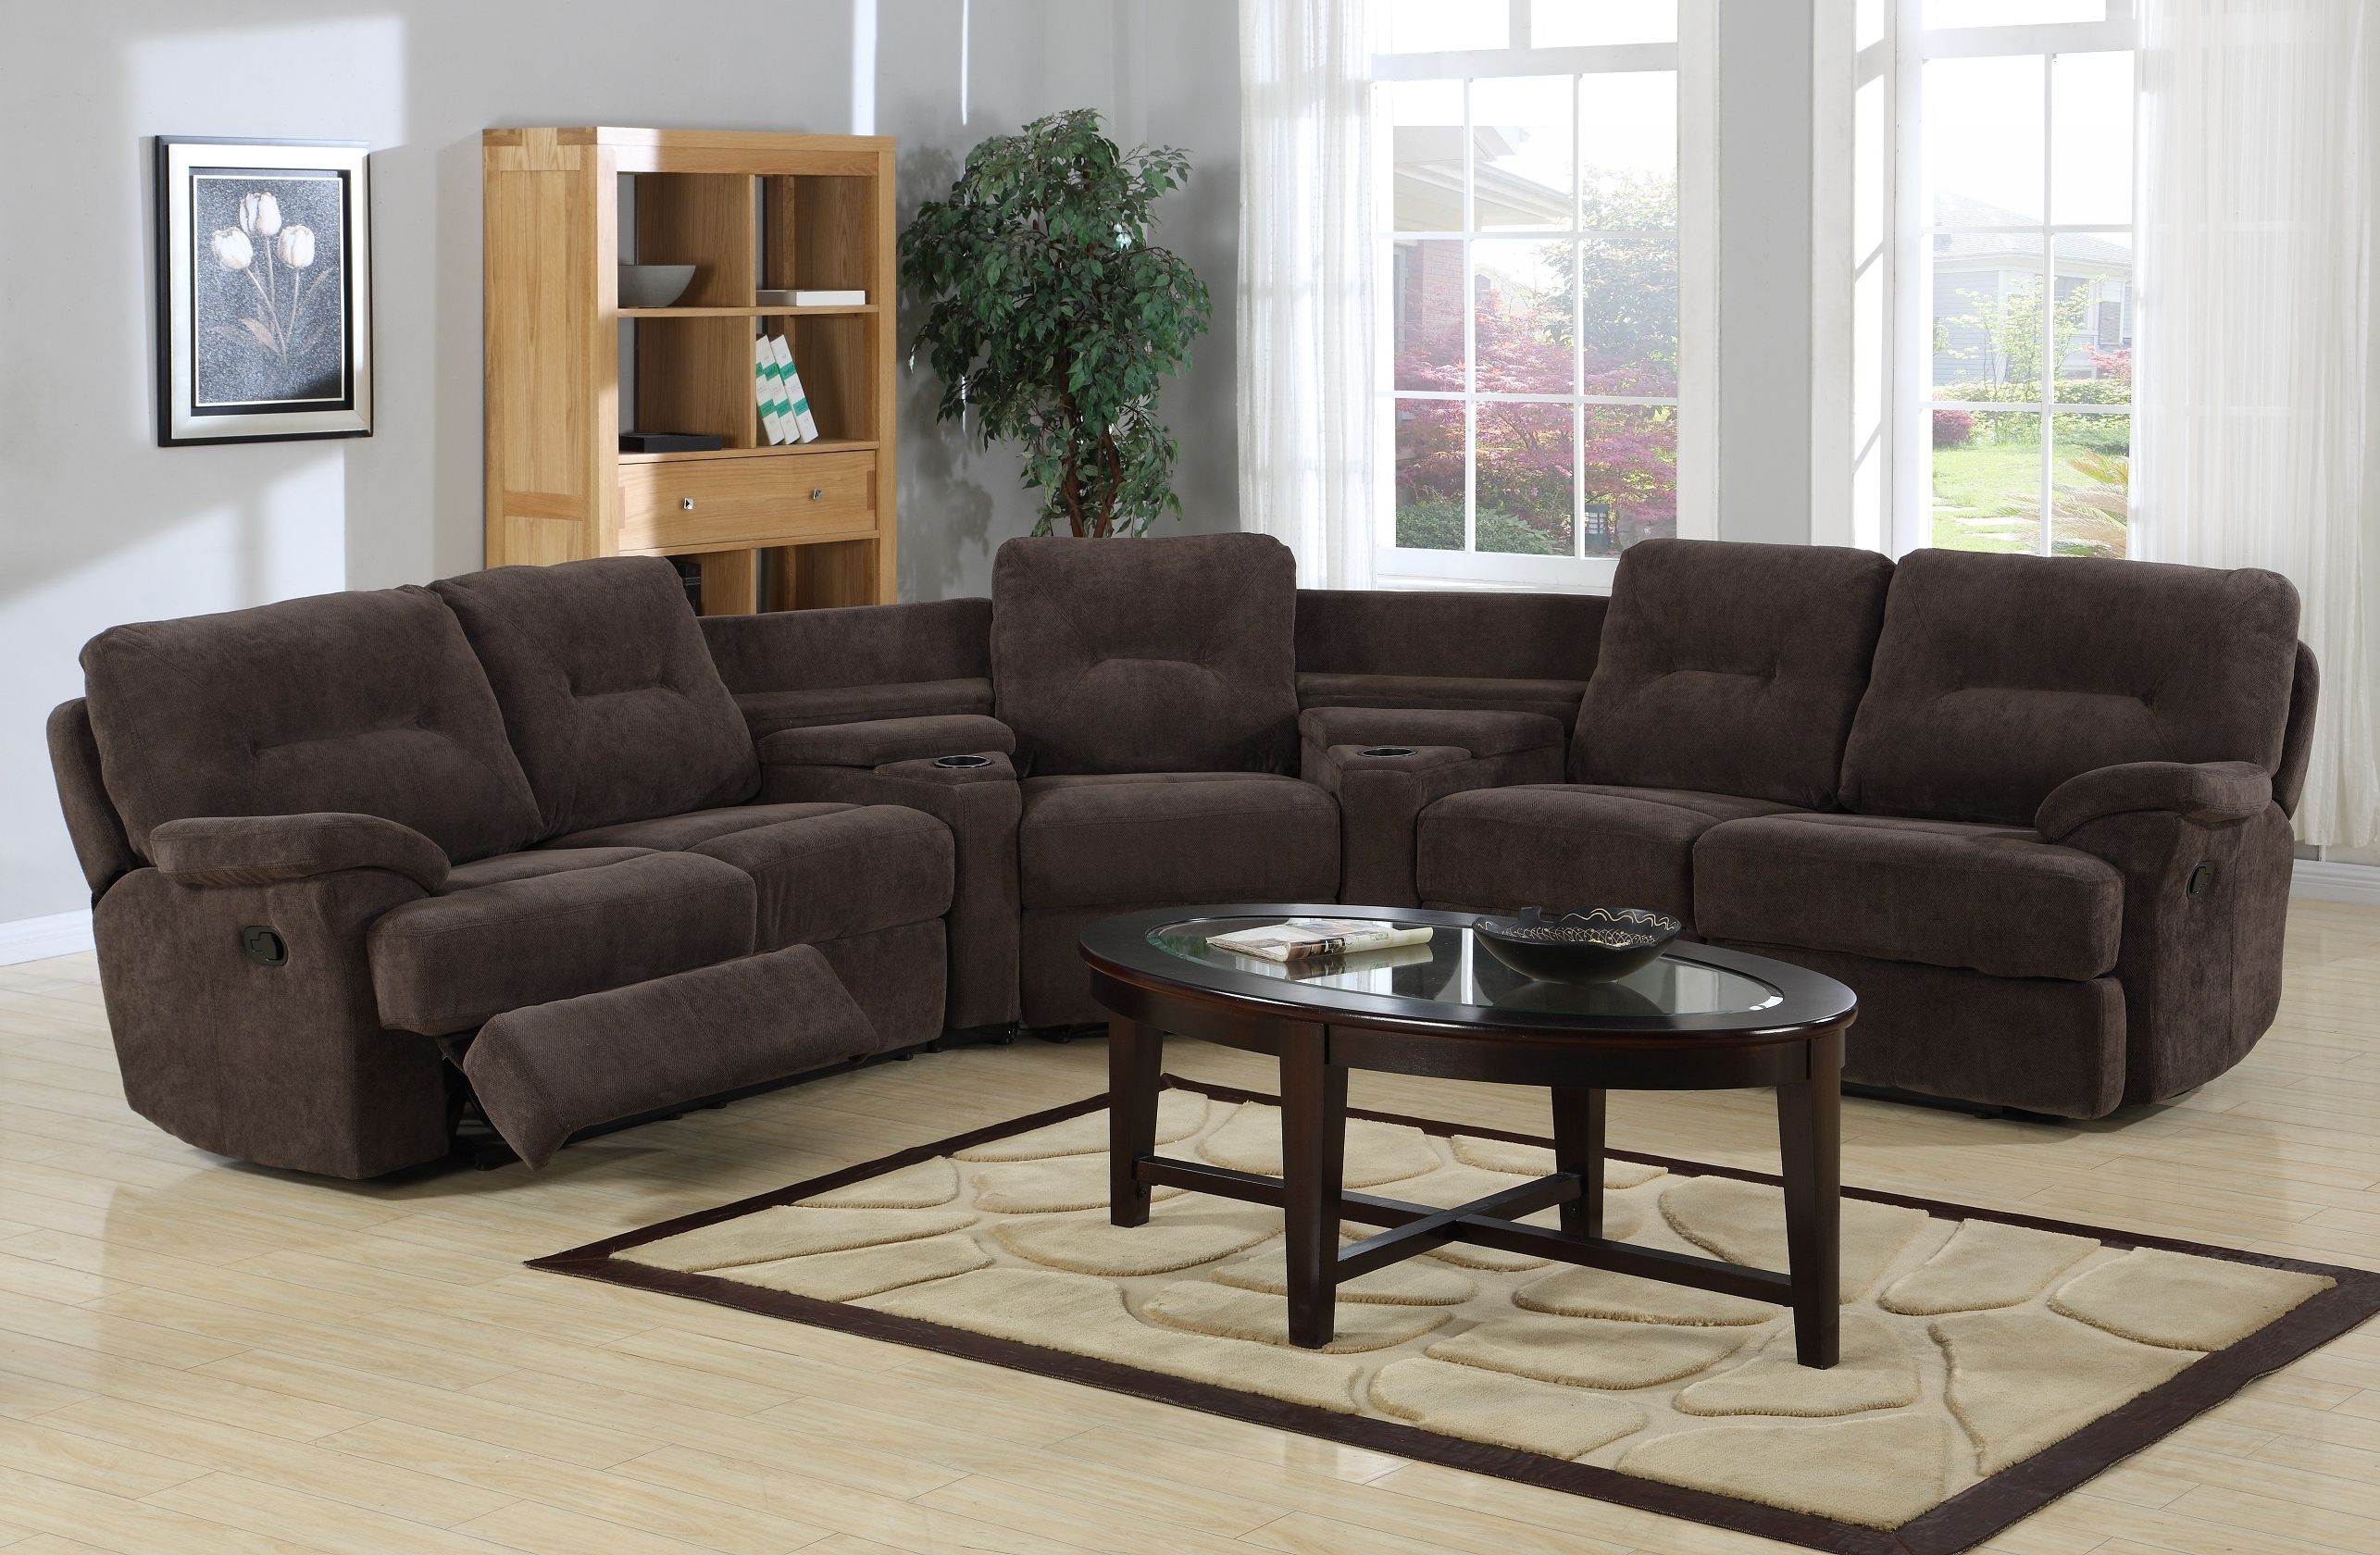 Curved Recliner Sofas Within Popular Sectional Sofa With Chaise Tags : Leather Sectional Sofa With (View 5 of 15)